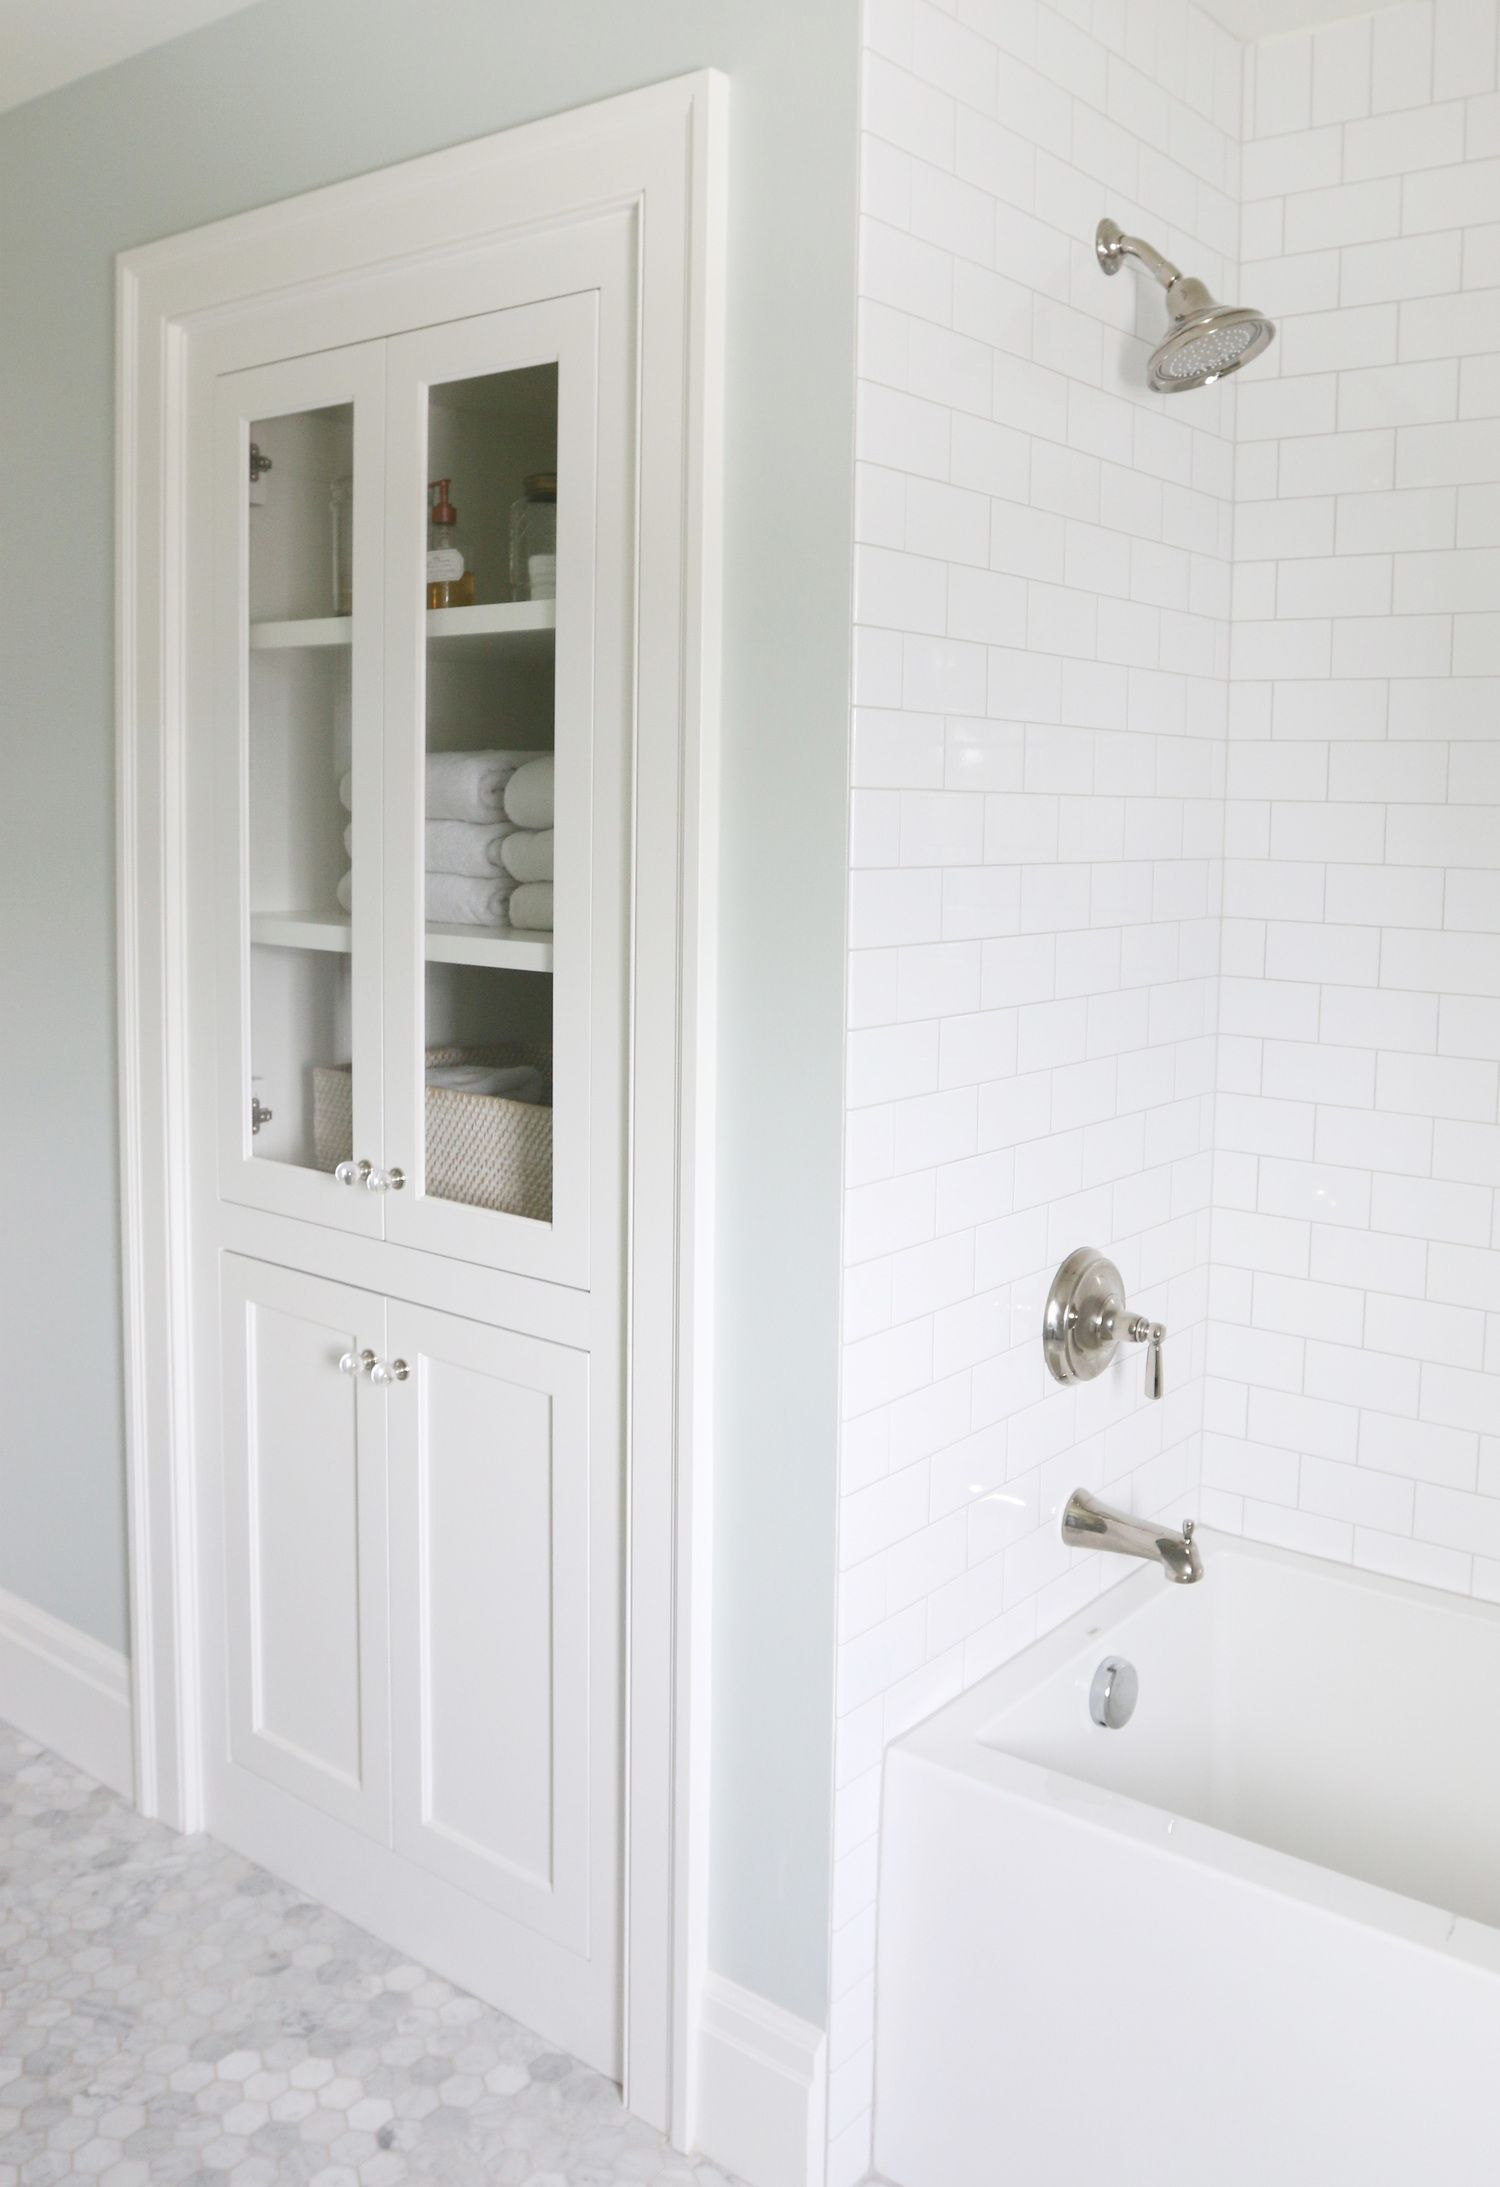 13 Sublime Small Bathroom Remodel Toilets Ideas In 2019